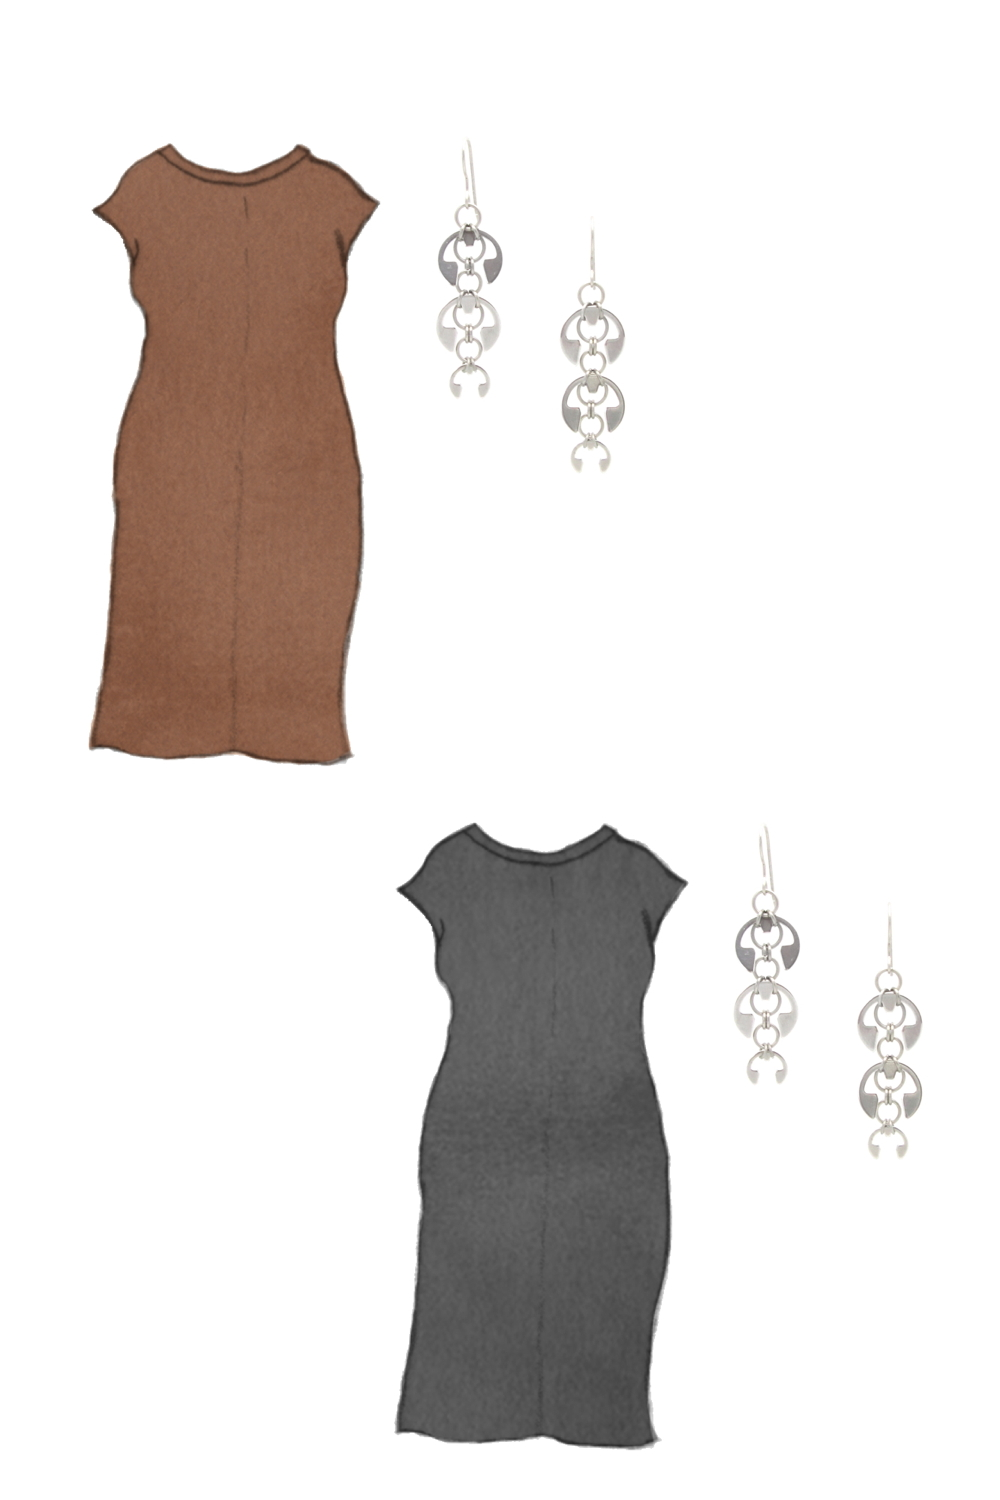 Style sketch of Everlane's Luxe Cotton Side-Slit Tee Dress in black and brown, with Wraptillion's Laburnum Earrings (modern delicate chandeliers).